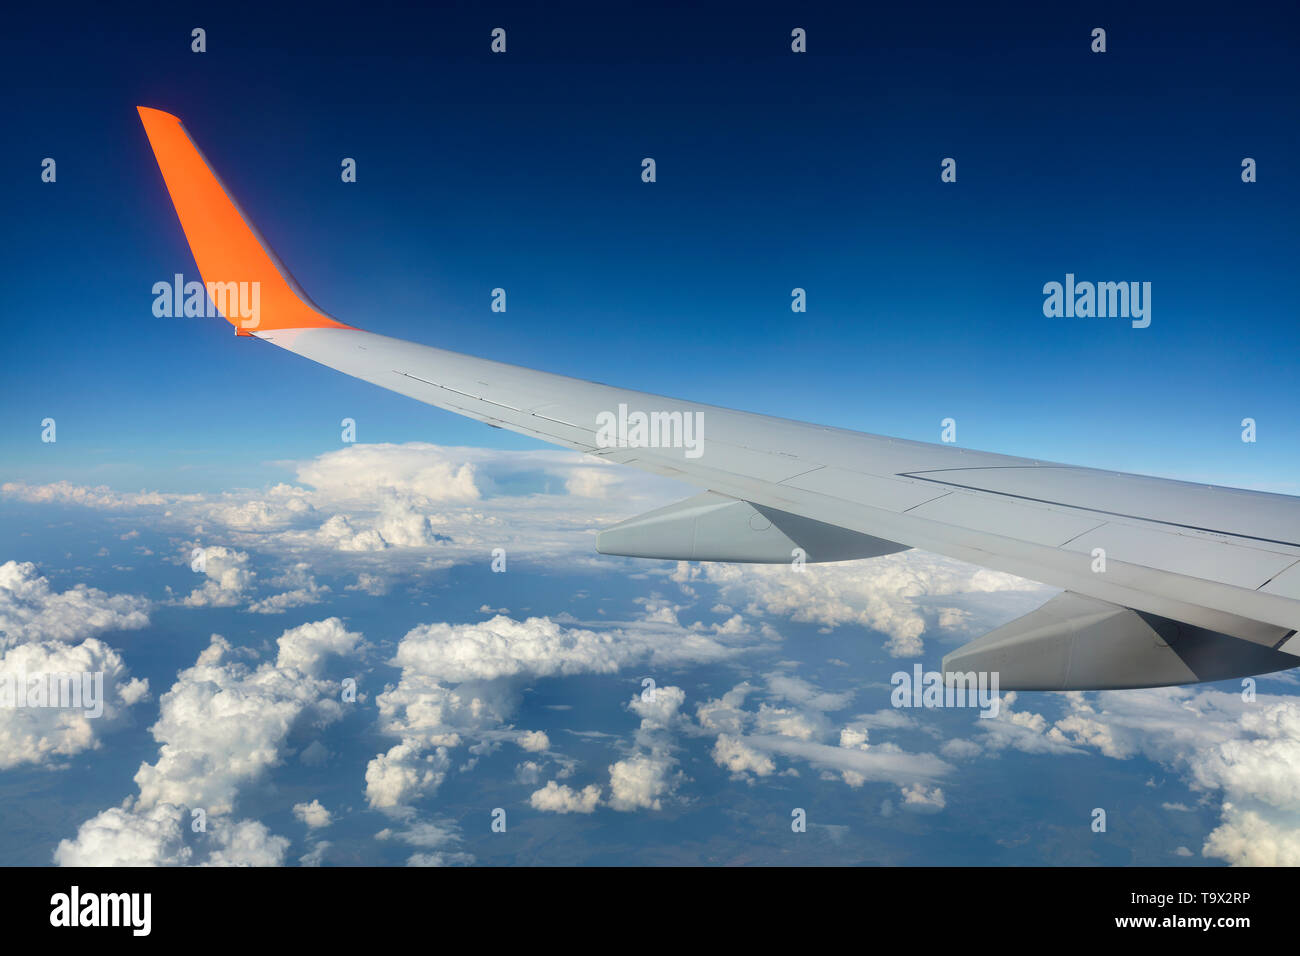 Wing of an airplane flying over white clouds in a blue sky Stock Photo